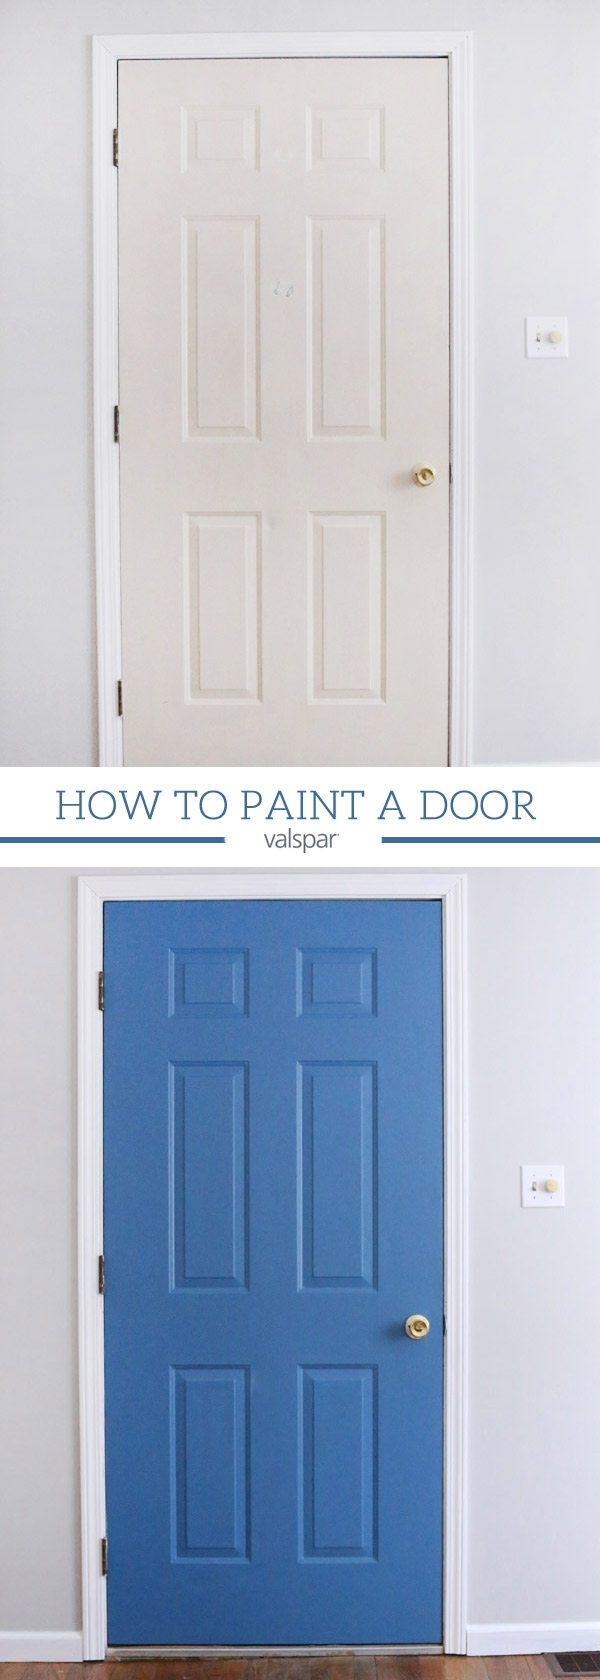 How To Paint A Door 31 Days Of Color With Valspar Ace